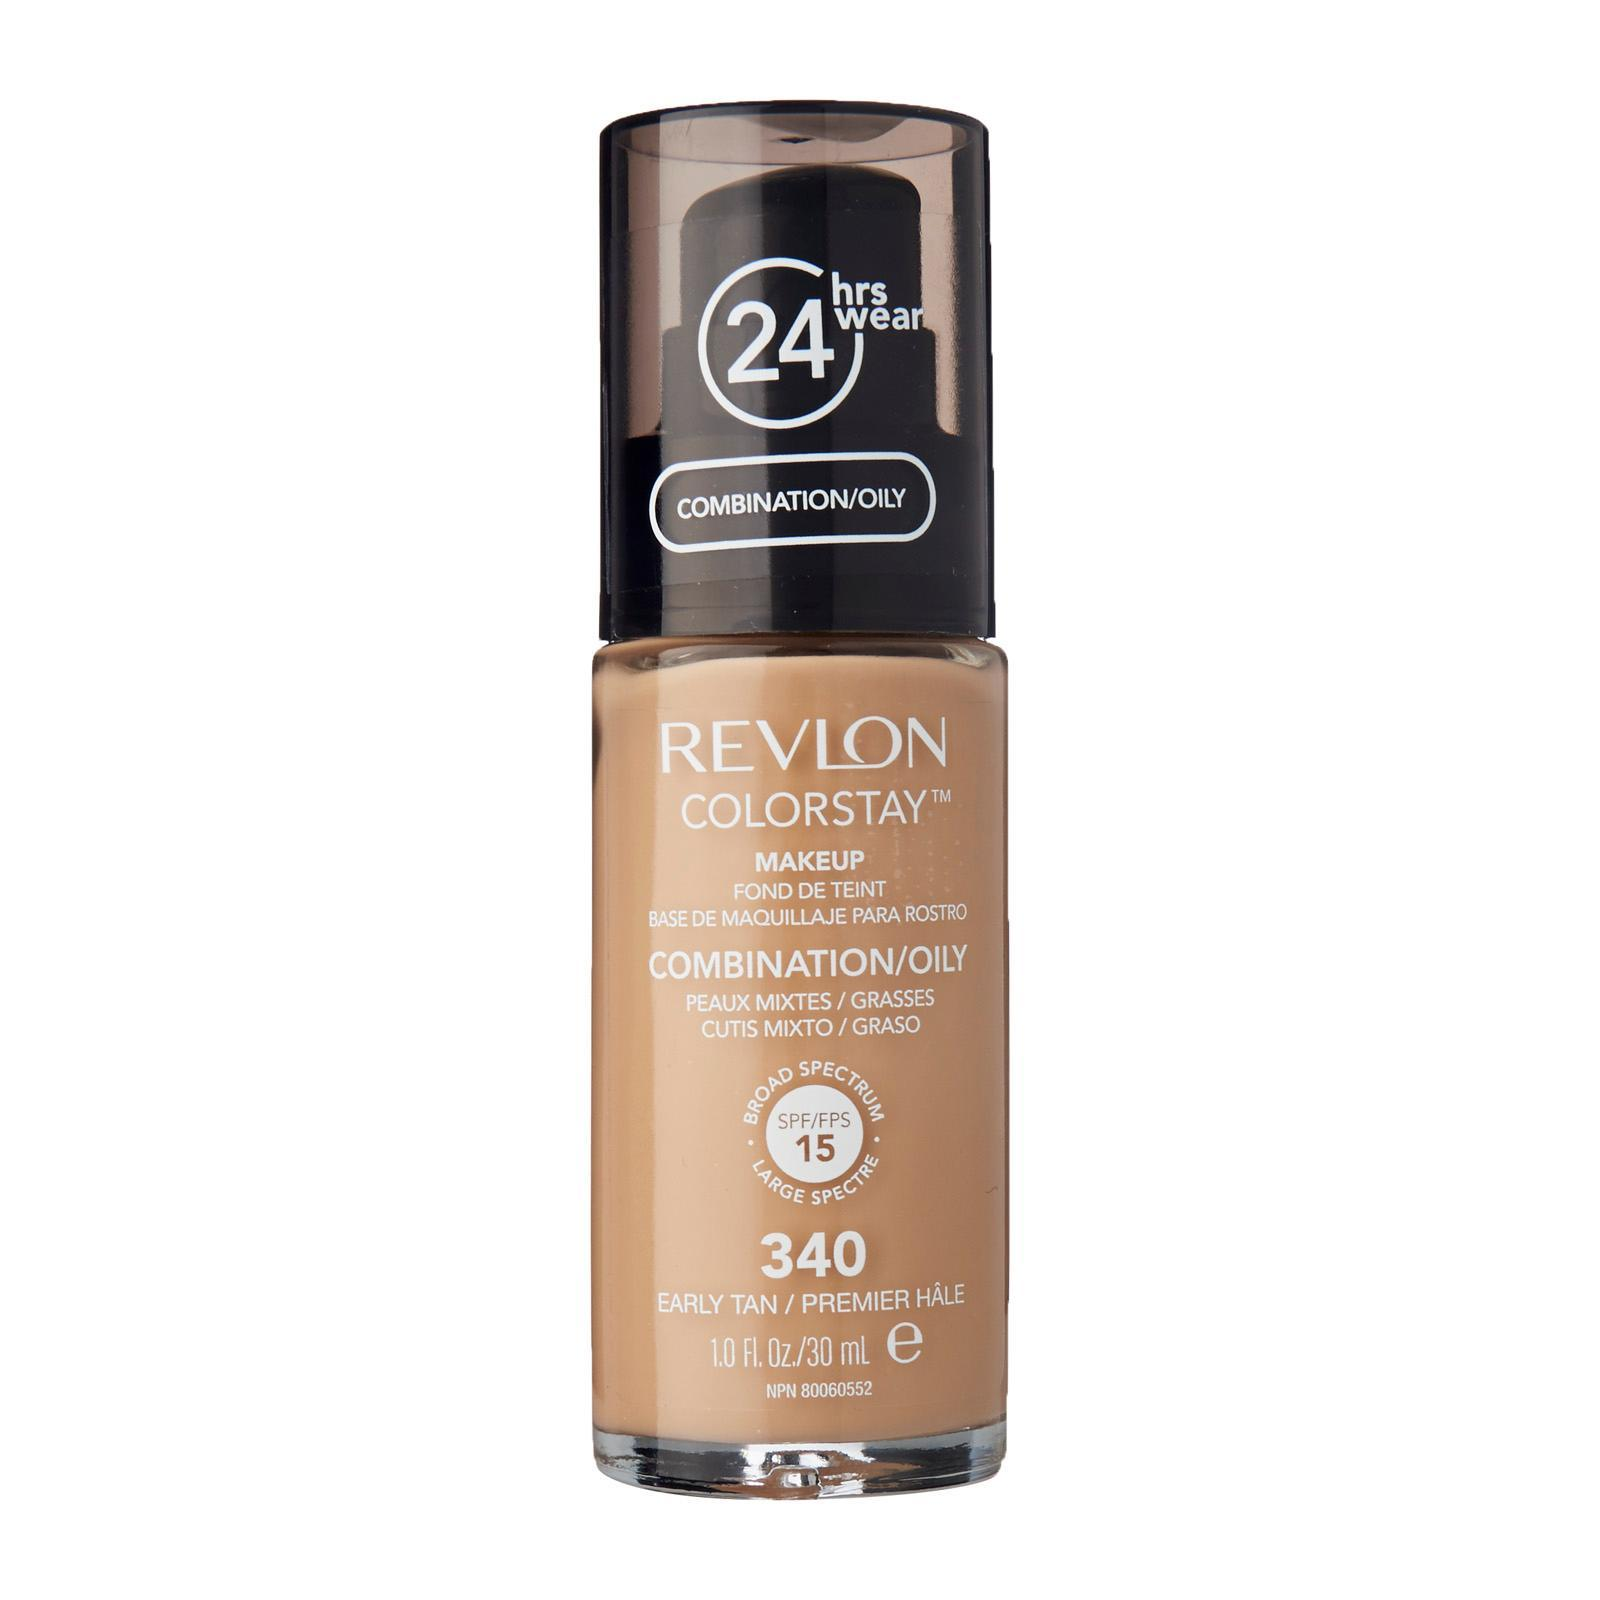 Revlon ColorStay Makeup for Combination/Oily Skin 340 Early Tan